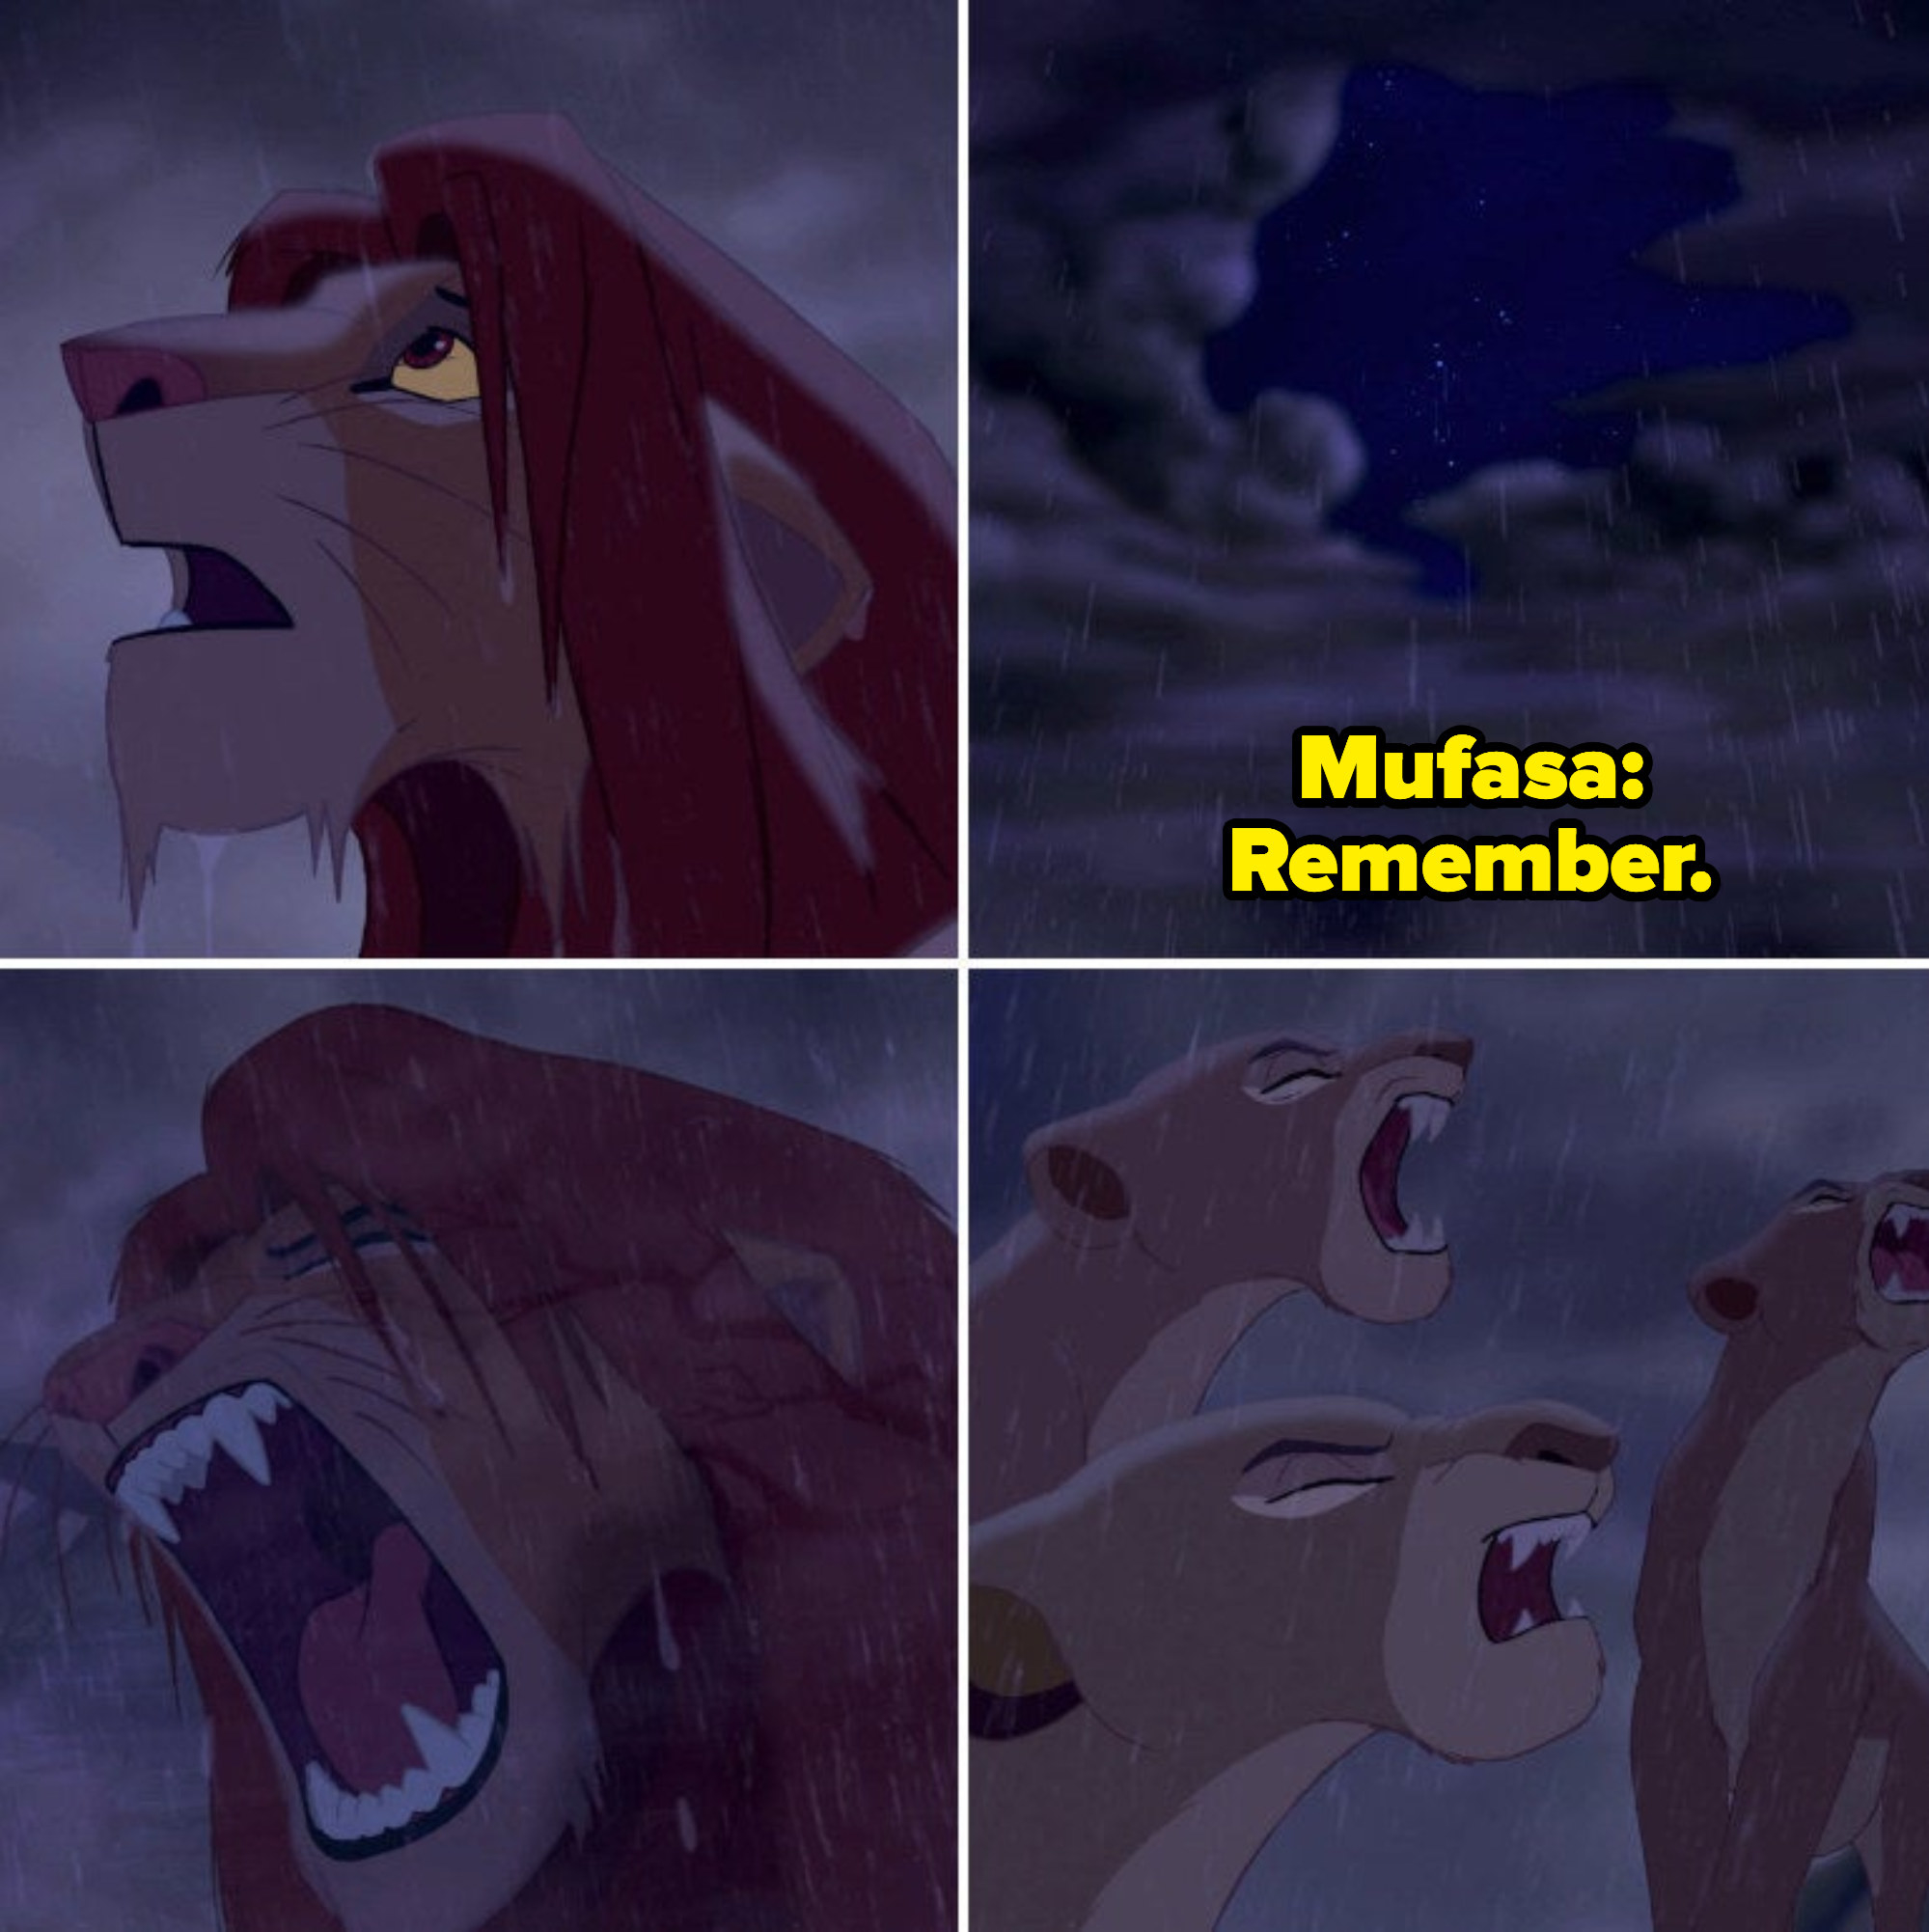 Simba looking up at the sky as the clouds part, hearing Mufasa's voice. He finally feels confident as the new king of Pride Rock; he roars, and the rest of the pride roars with him